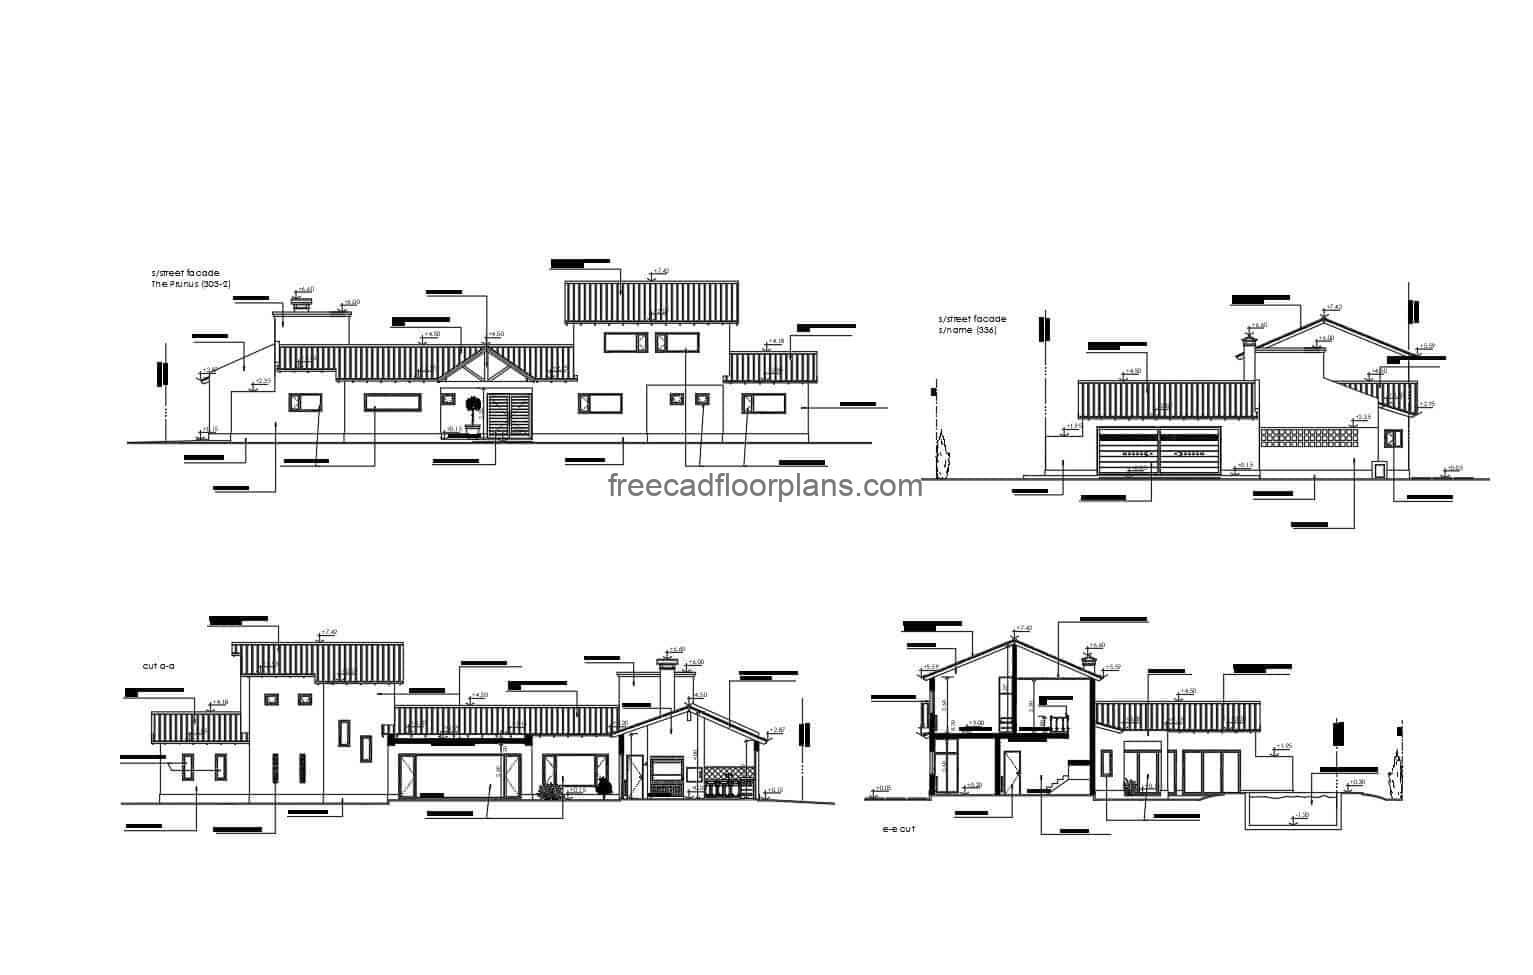 Architectural plans and complete draft of a two-storey country house in DWG format